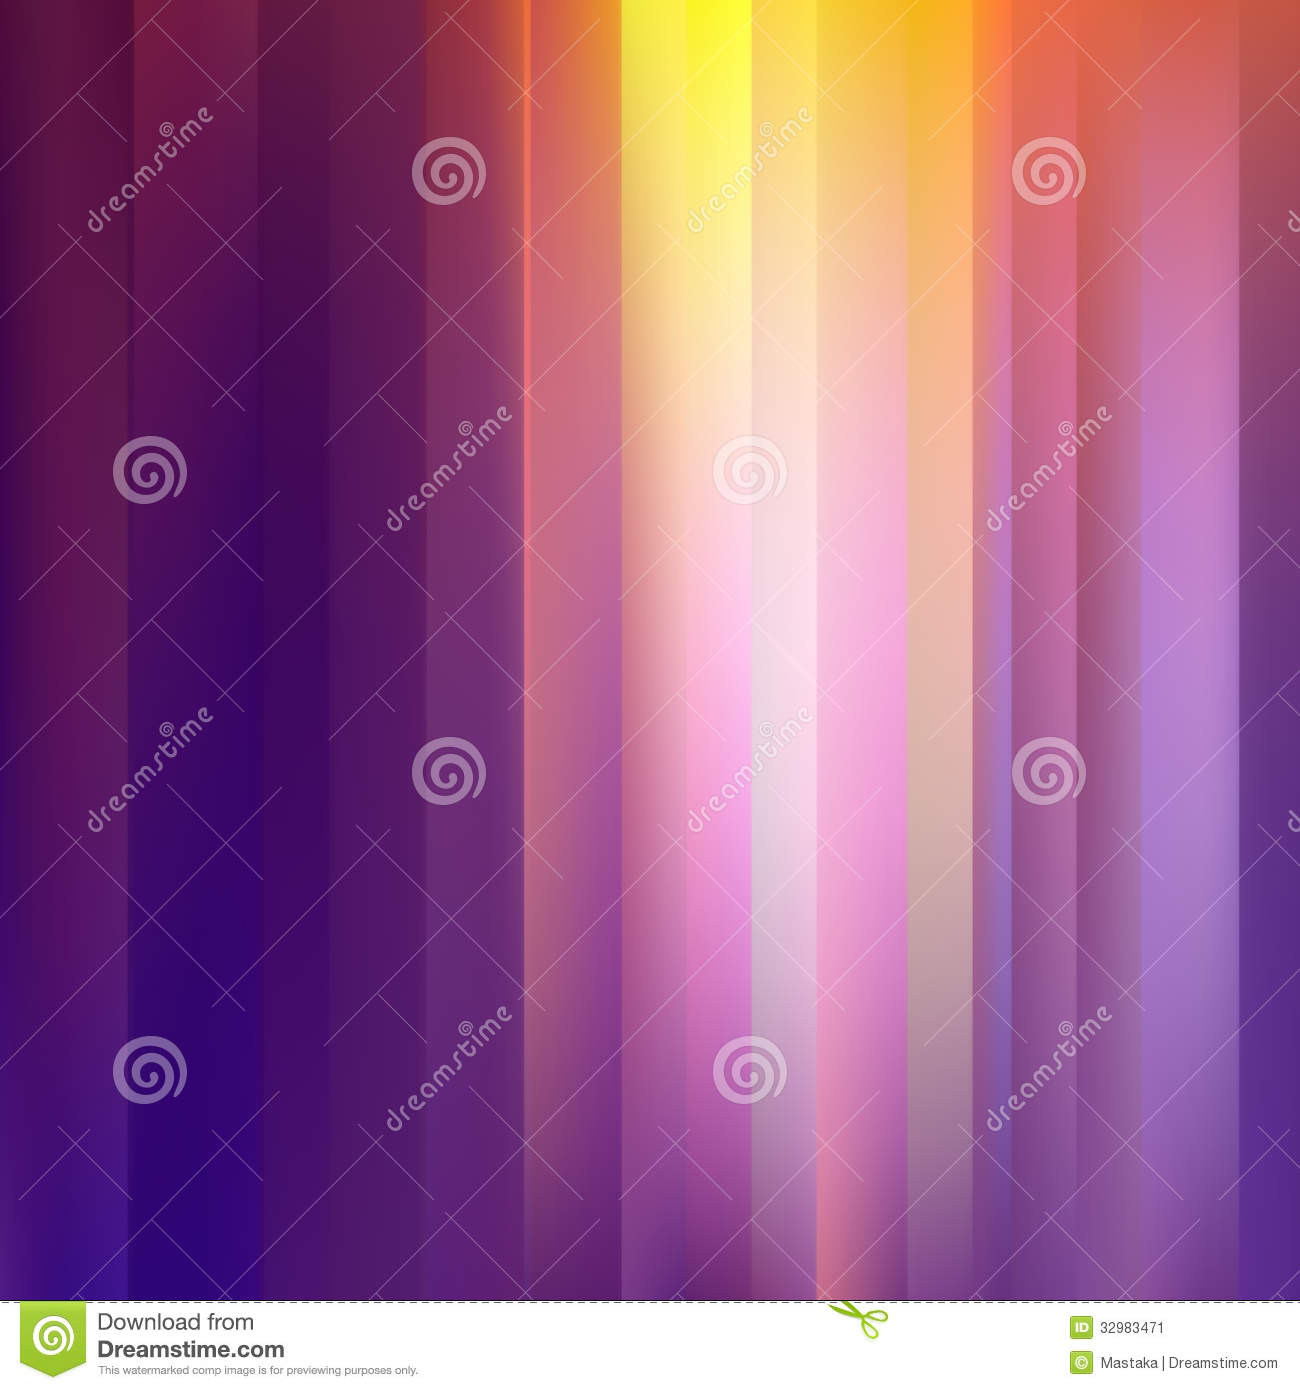 Fotolia  Sell and buy royaltyfree photos images